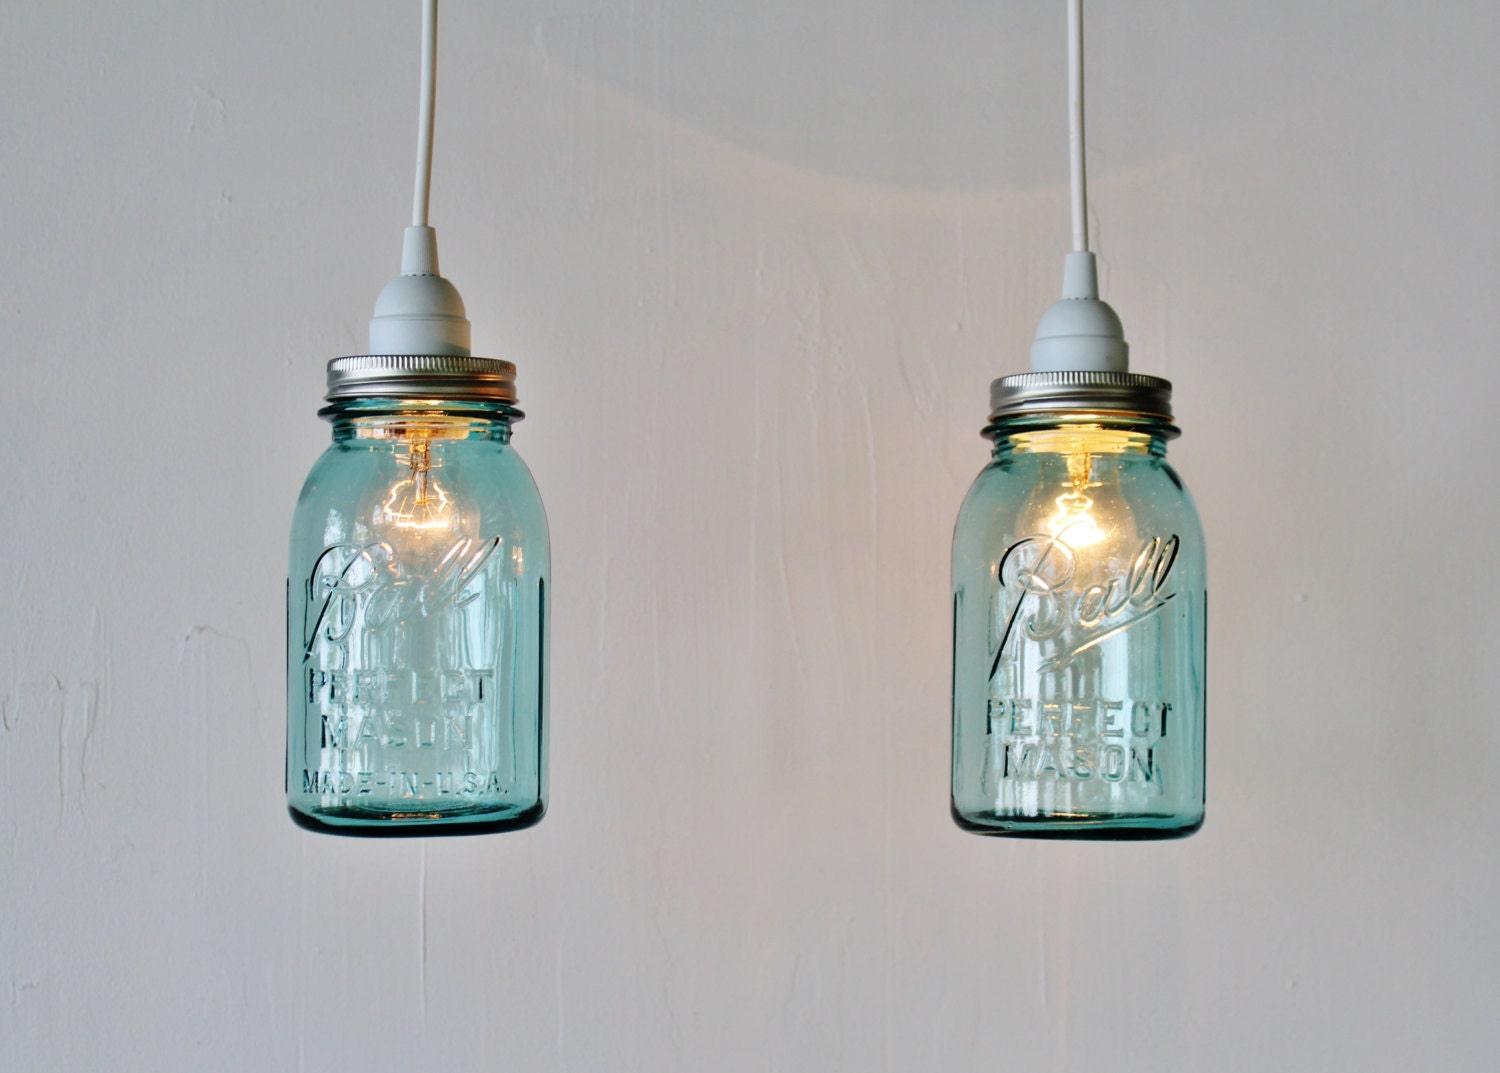 mason jar pendant lighting. 🔎zoom Mason Jar Pendant Lighting O